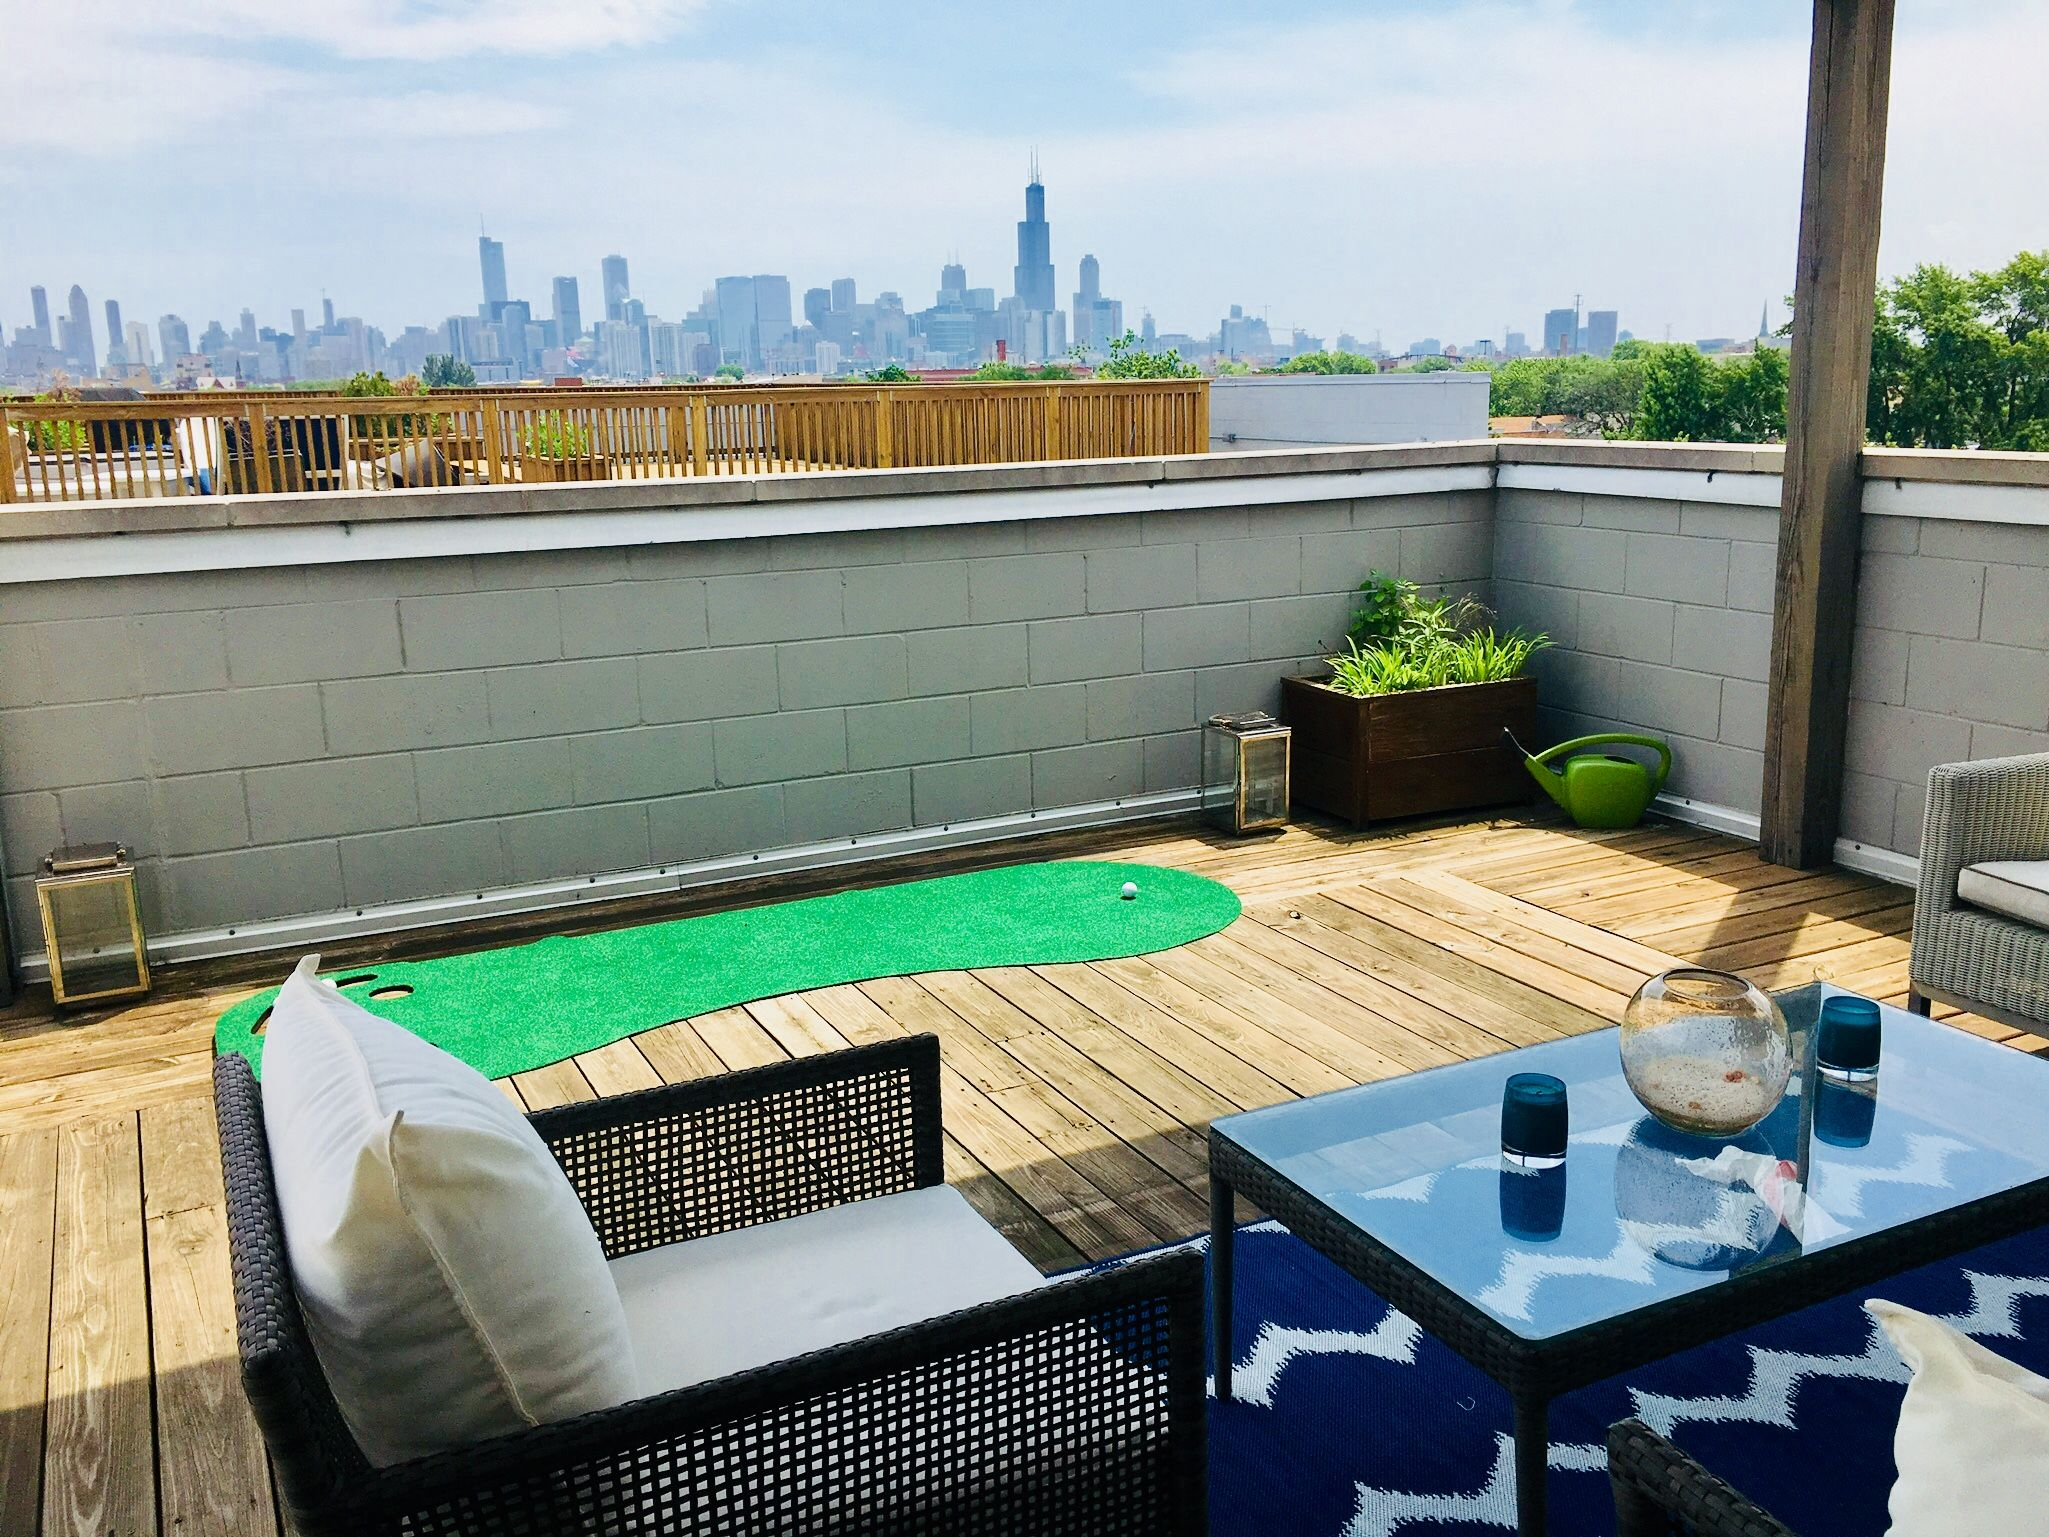 Modern Rooftop Deck In Ukrainian Village Chicago With City Views